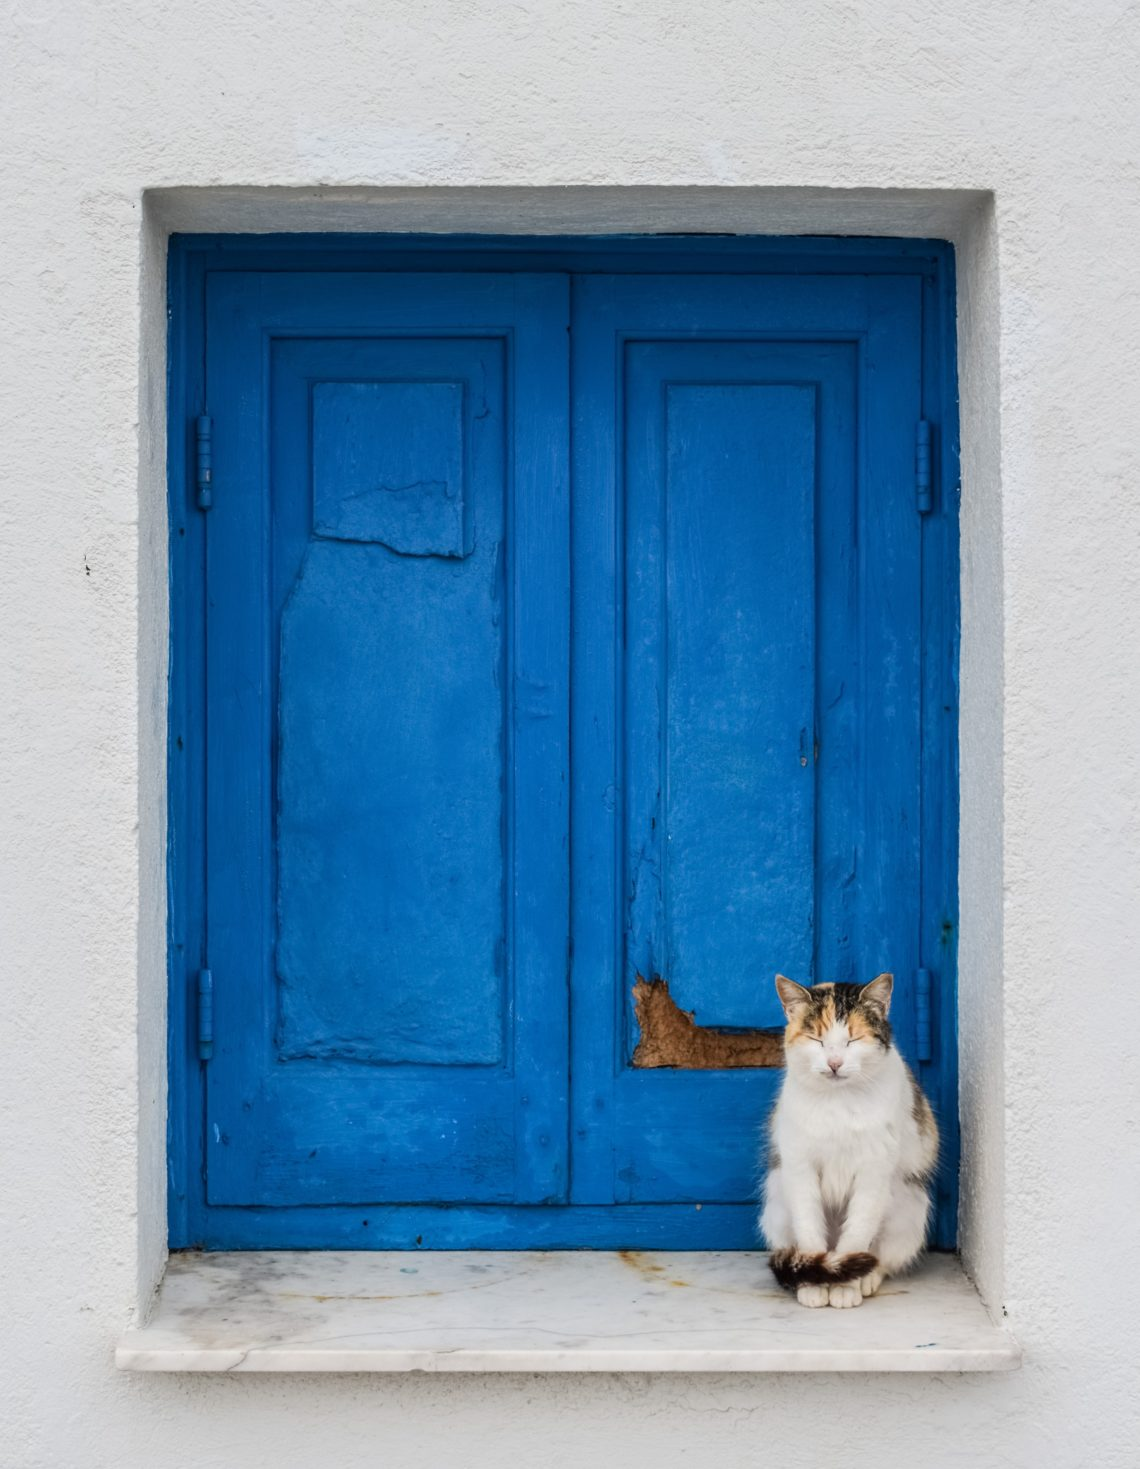 Calico cat sitting in a blue Cypriot window